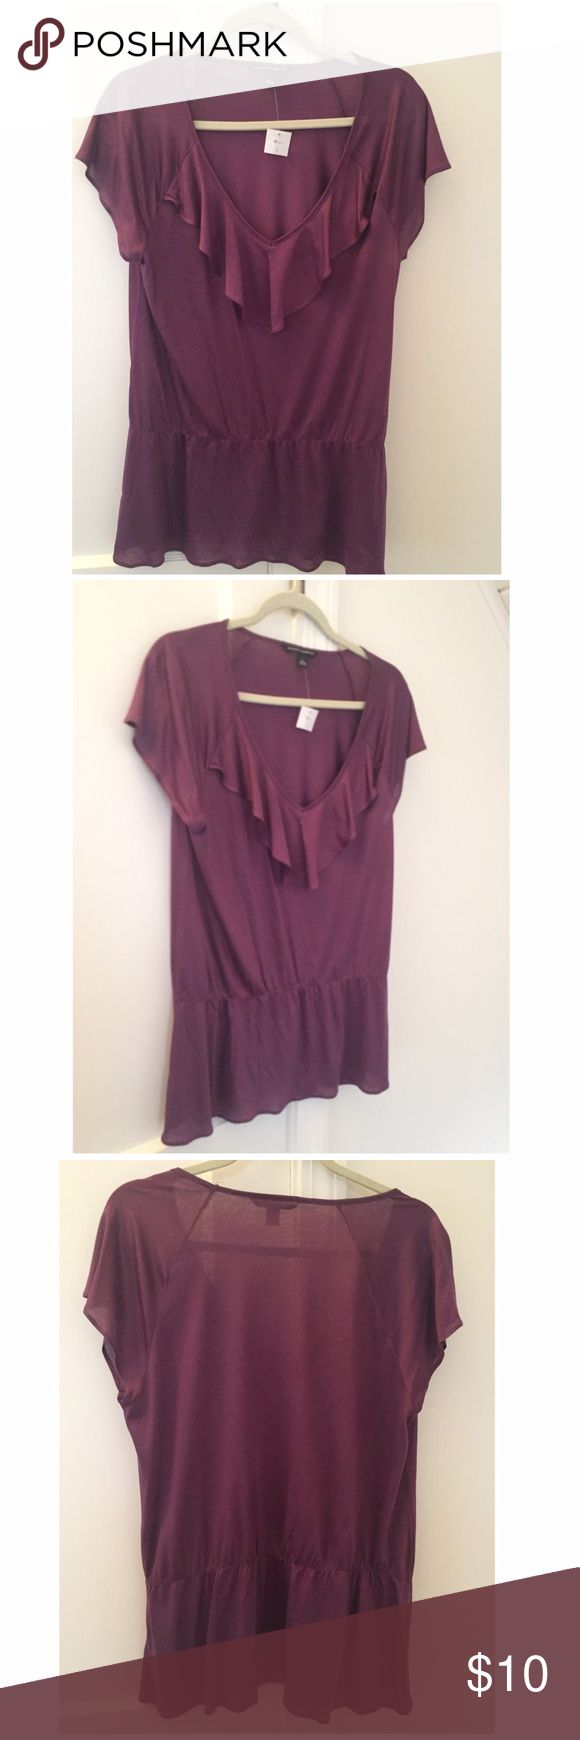 """NWT Banana Republic Purple Short Sleeve Top Large New, with tag, Banana Republic short sleeve top w/ feminine ruffled V-neckline and elasticized drop waist w/ flutter hemline. The color is a beautiful rich grape hue (purple). Material is 70% rayon & 30% lyocell. Pretty & lightweight, make this an addition to your warm weather wardrobe! Measurements taken with top laid out flat on table: Underarm to underarm: 18-1/8"""" Shoulder to hem: 27-3/8"""" Shoulder to drop waist: 19-5/8"""" Width at hem…"""